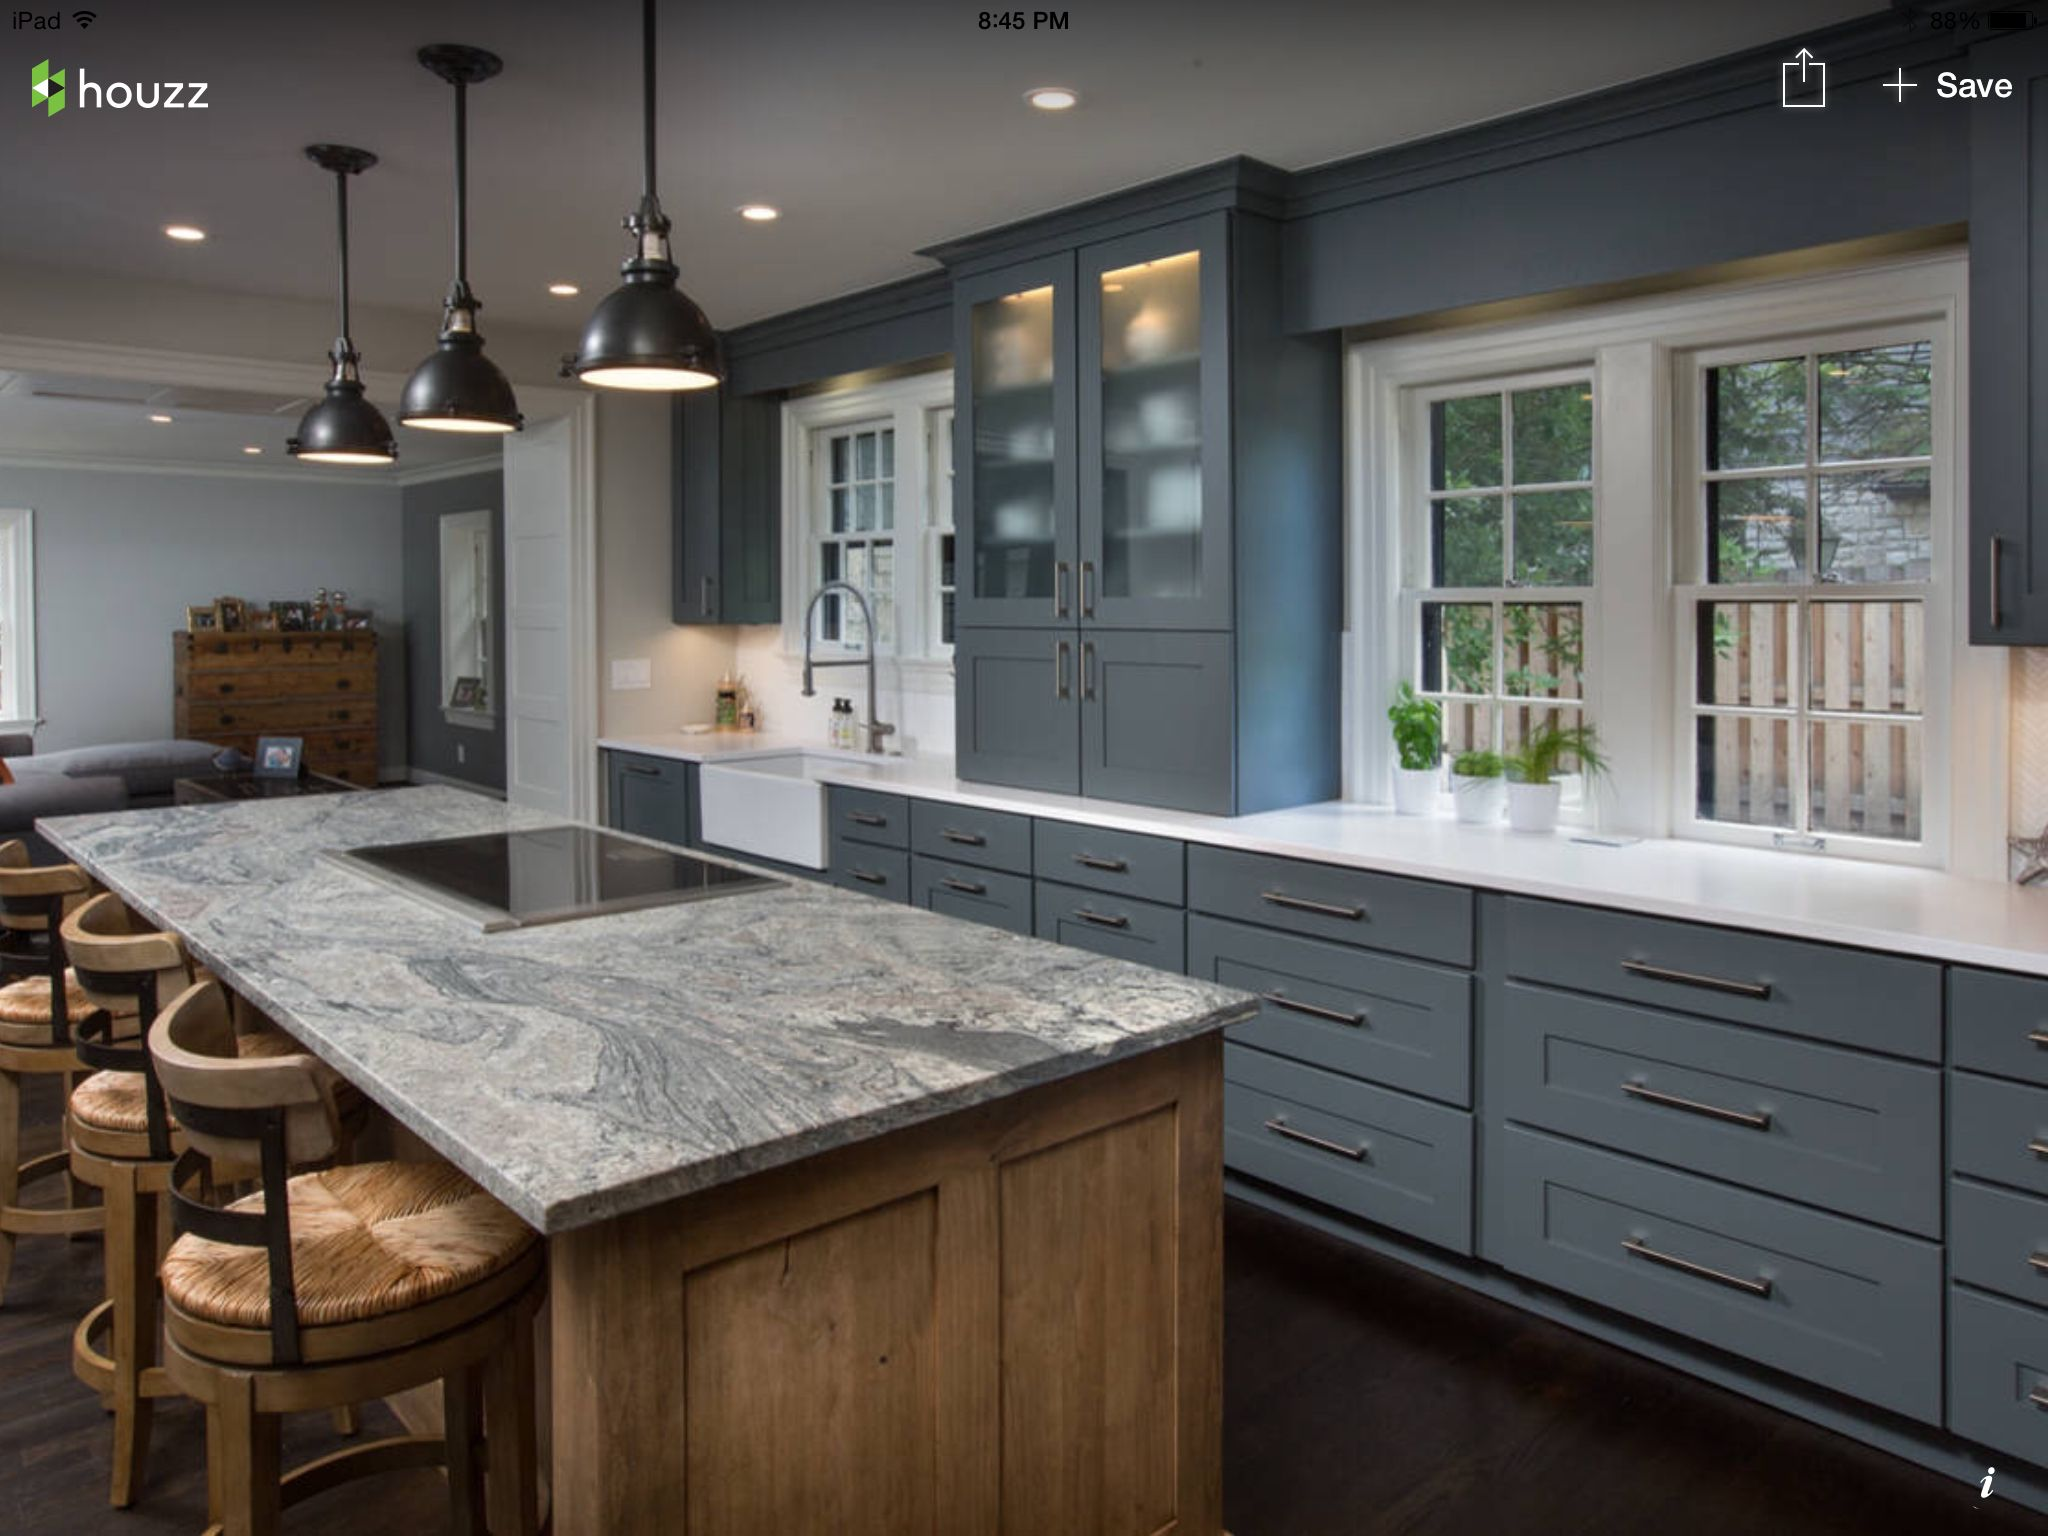 gray kitchen cabinets frosted glass cabinet counter with streak design with images home on kitchen decor grey cabinets id=18693